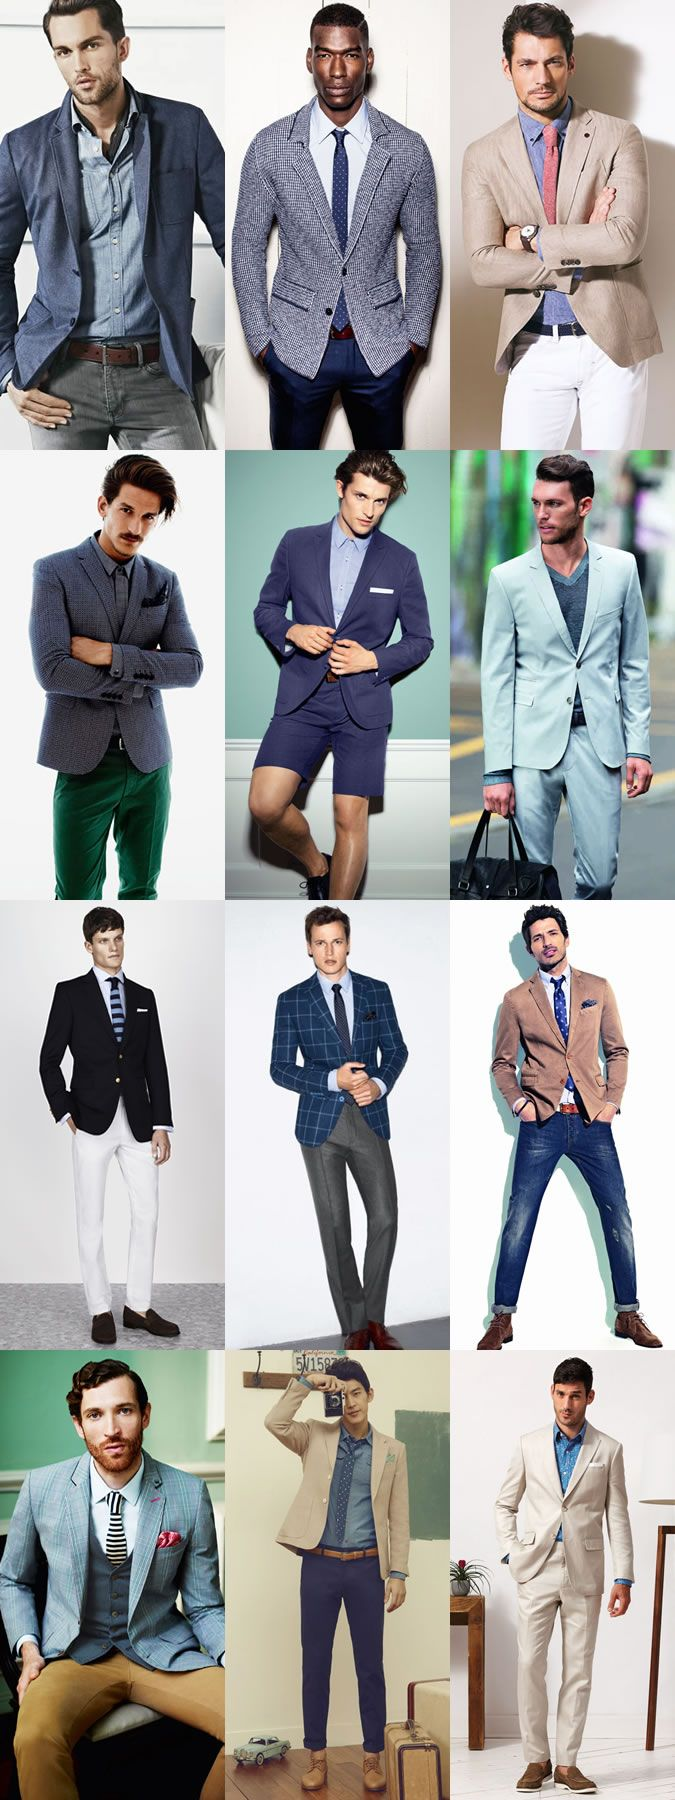 Mens smartcasual office dress code lookbook springsummer